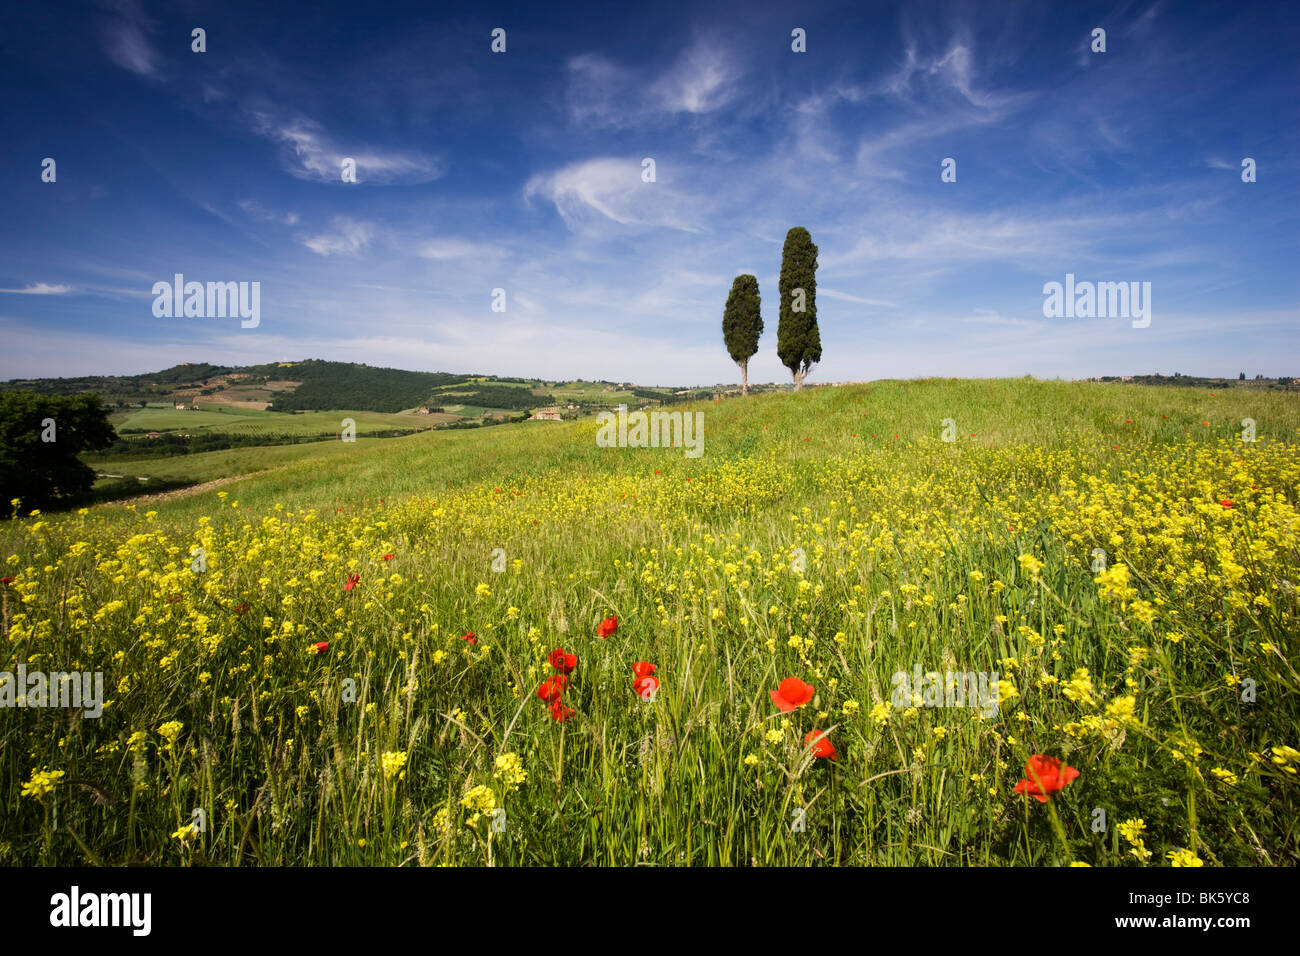 Field of poppies and oil seed with two cypress trees on brow of hill, near Pienza, Tuscany, Italy, Europe - Stock Image